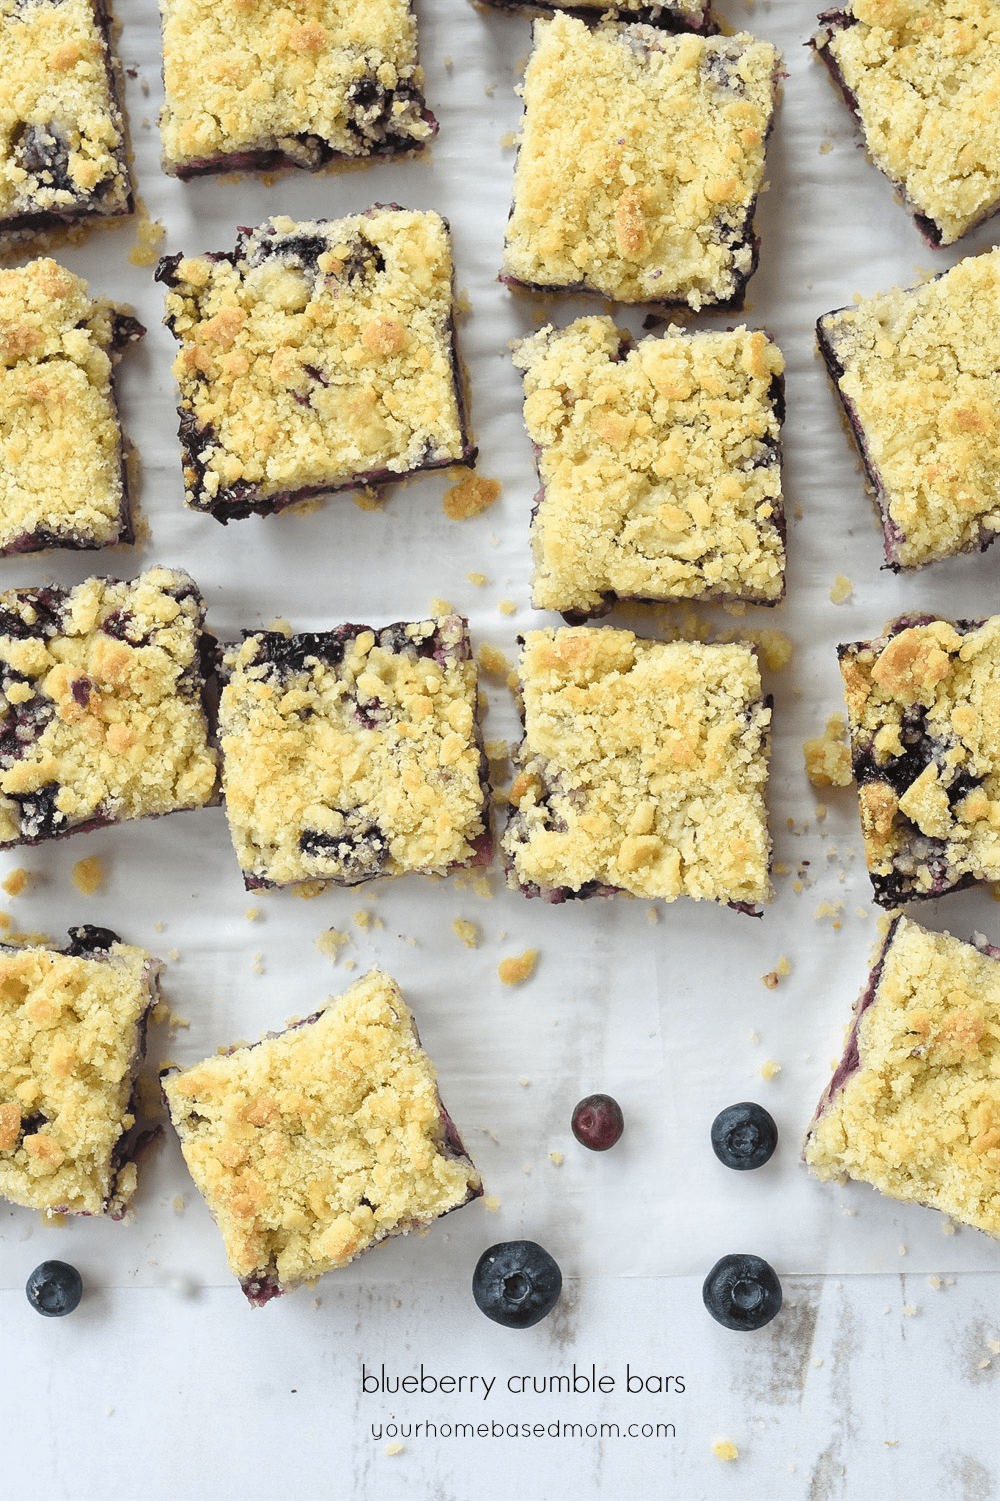 blueberry crumble bars cut into squares